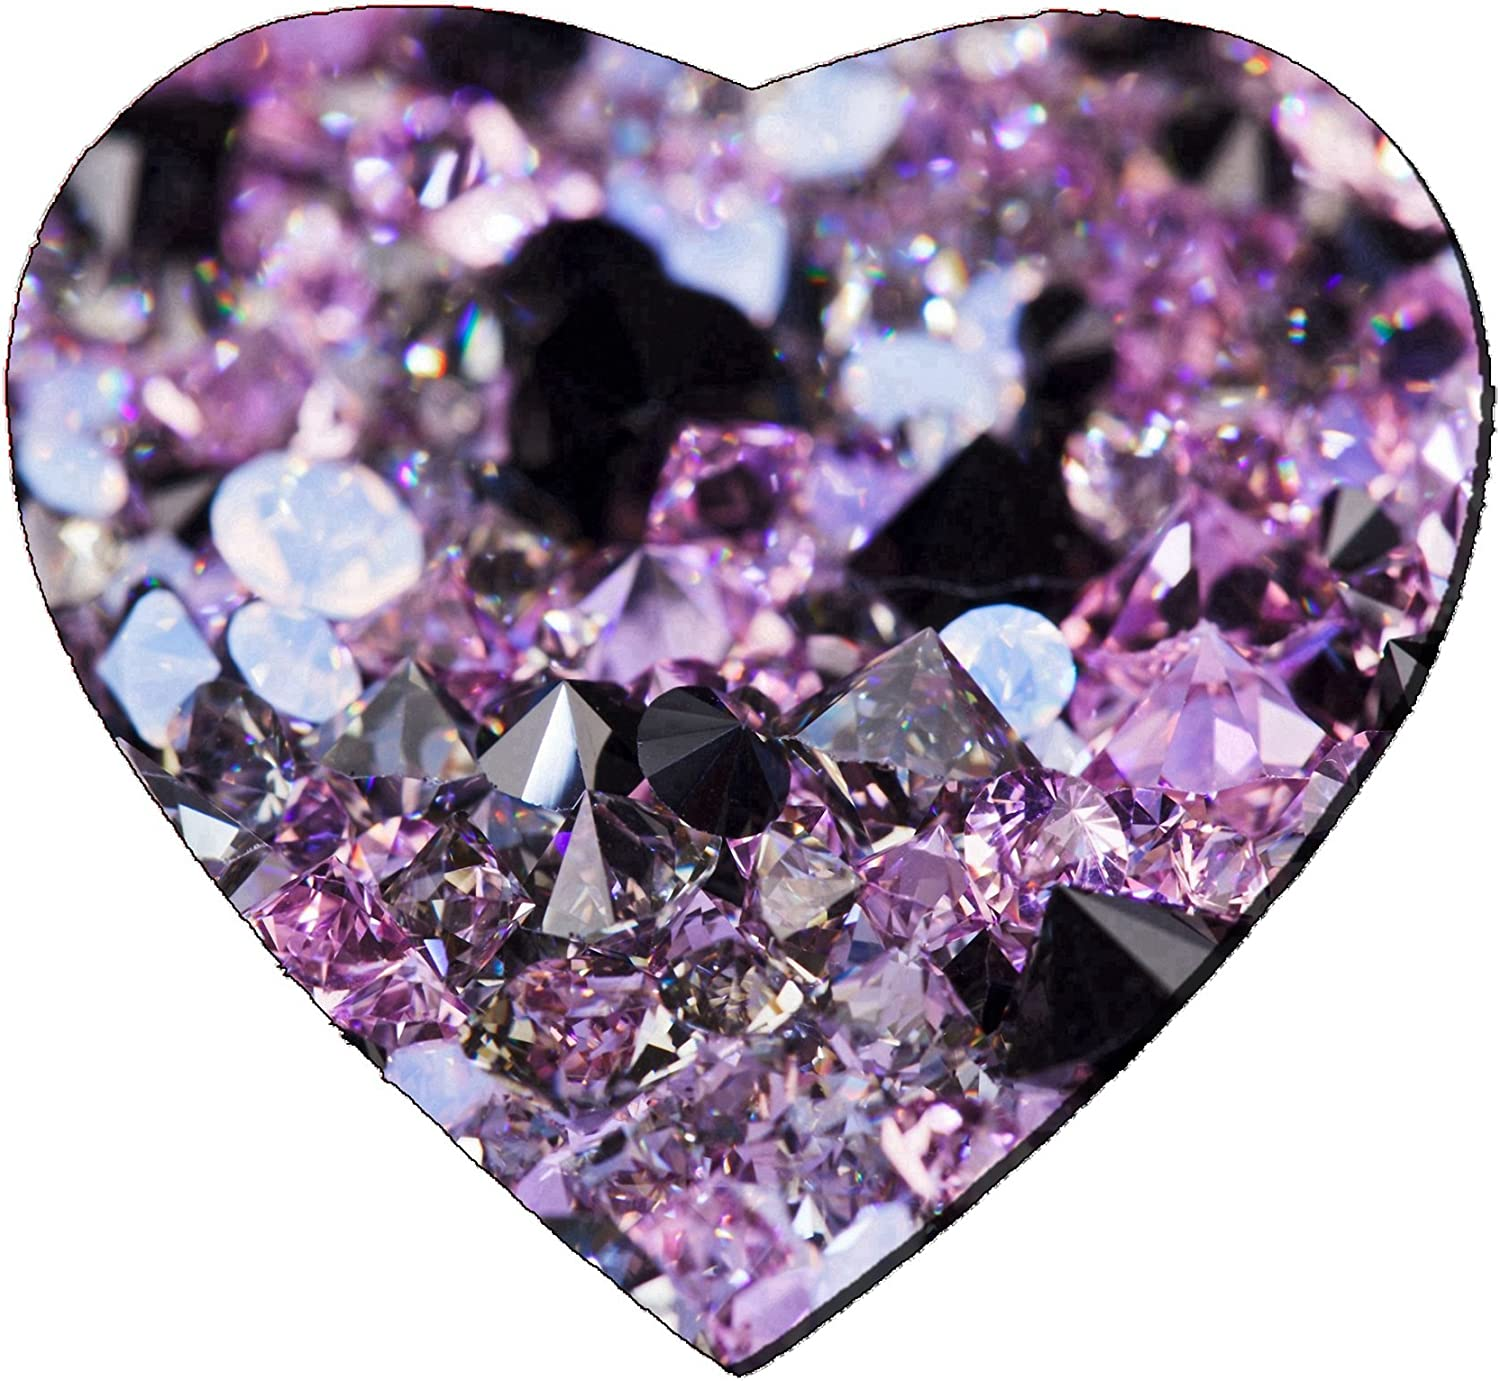 Liili Mousepad Heart Shaped Mouse Pads//Mat Small Purple gem Stones Luxury Background Shallow Depth of Field Image ID 11212154